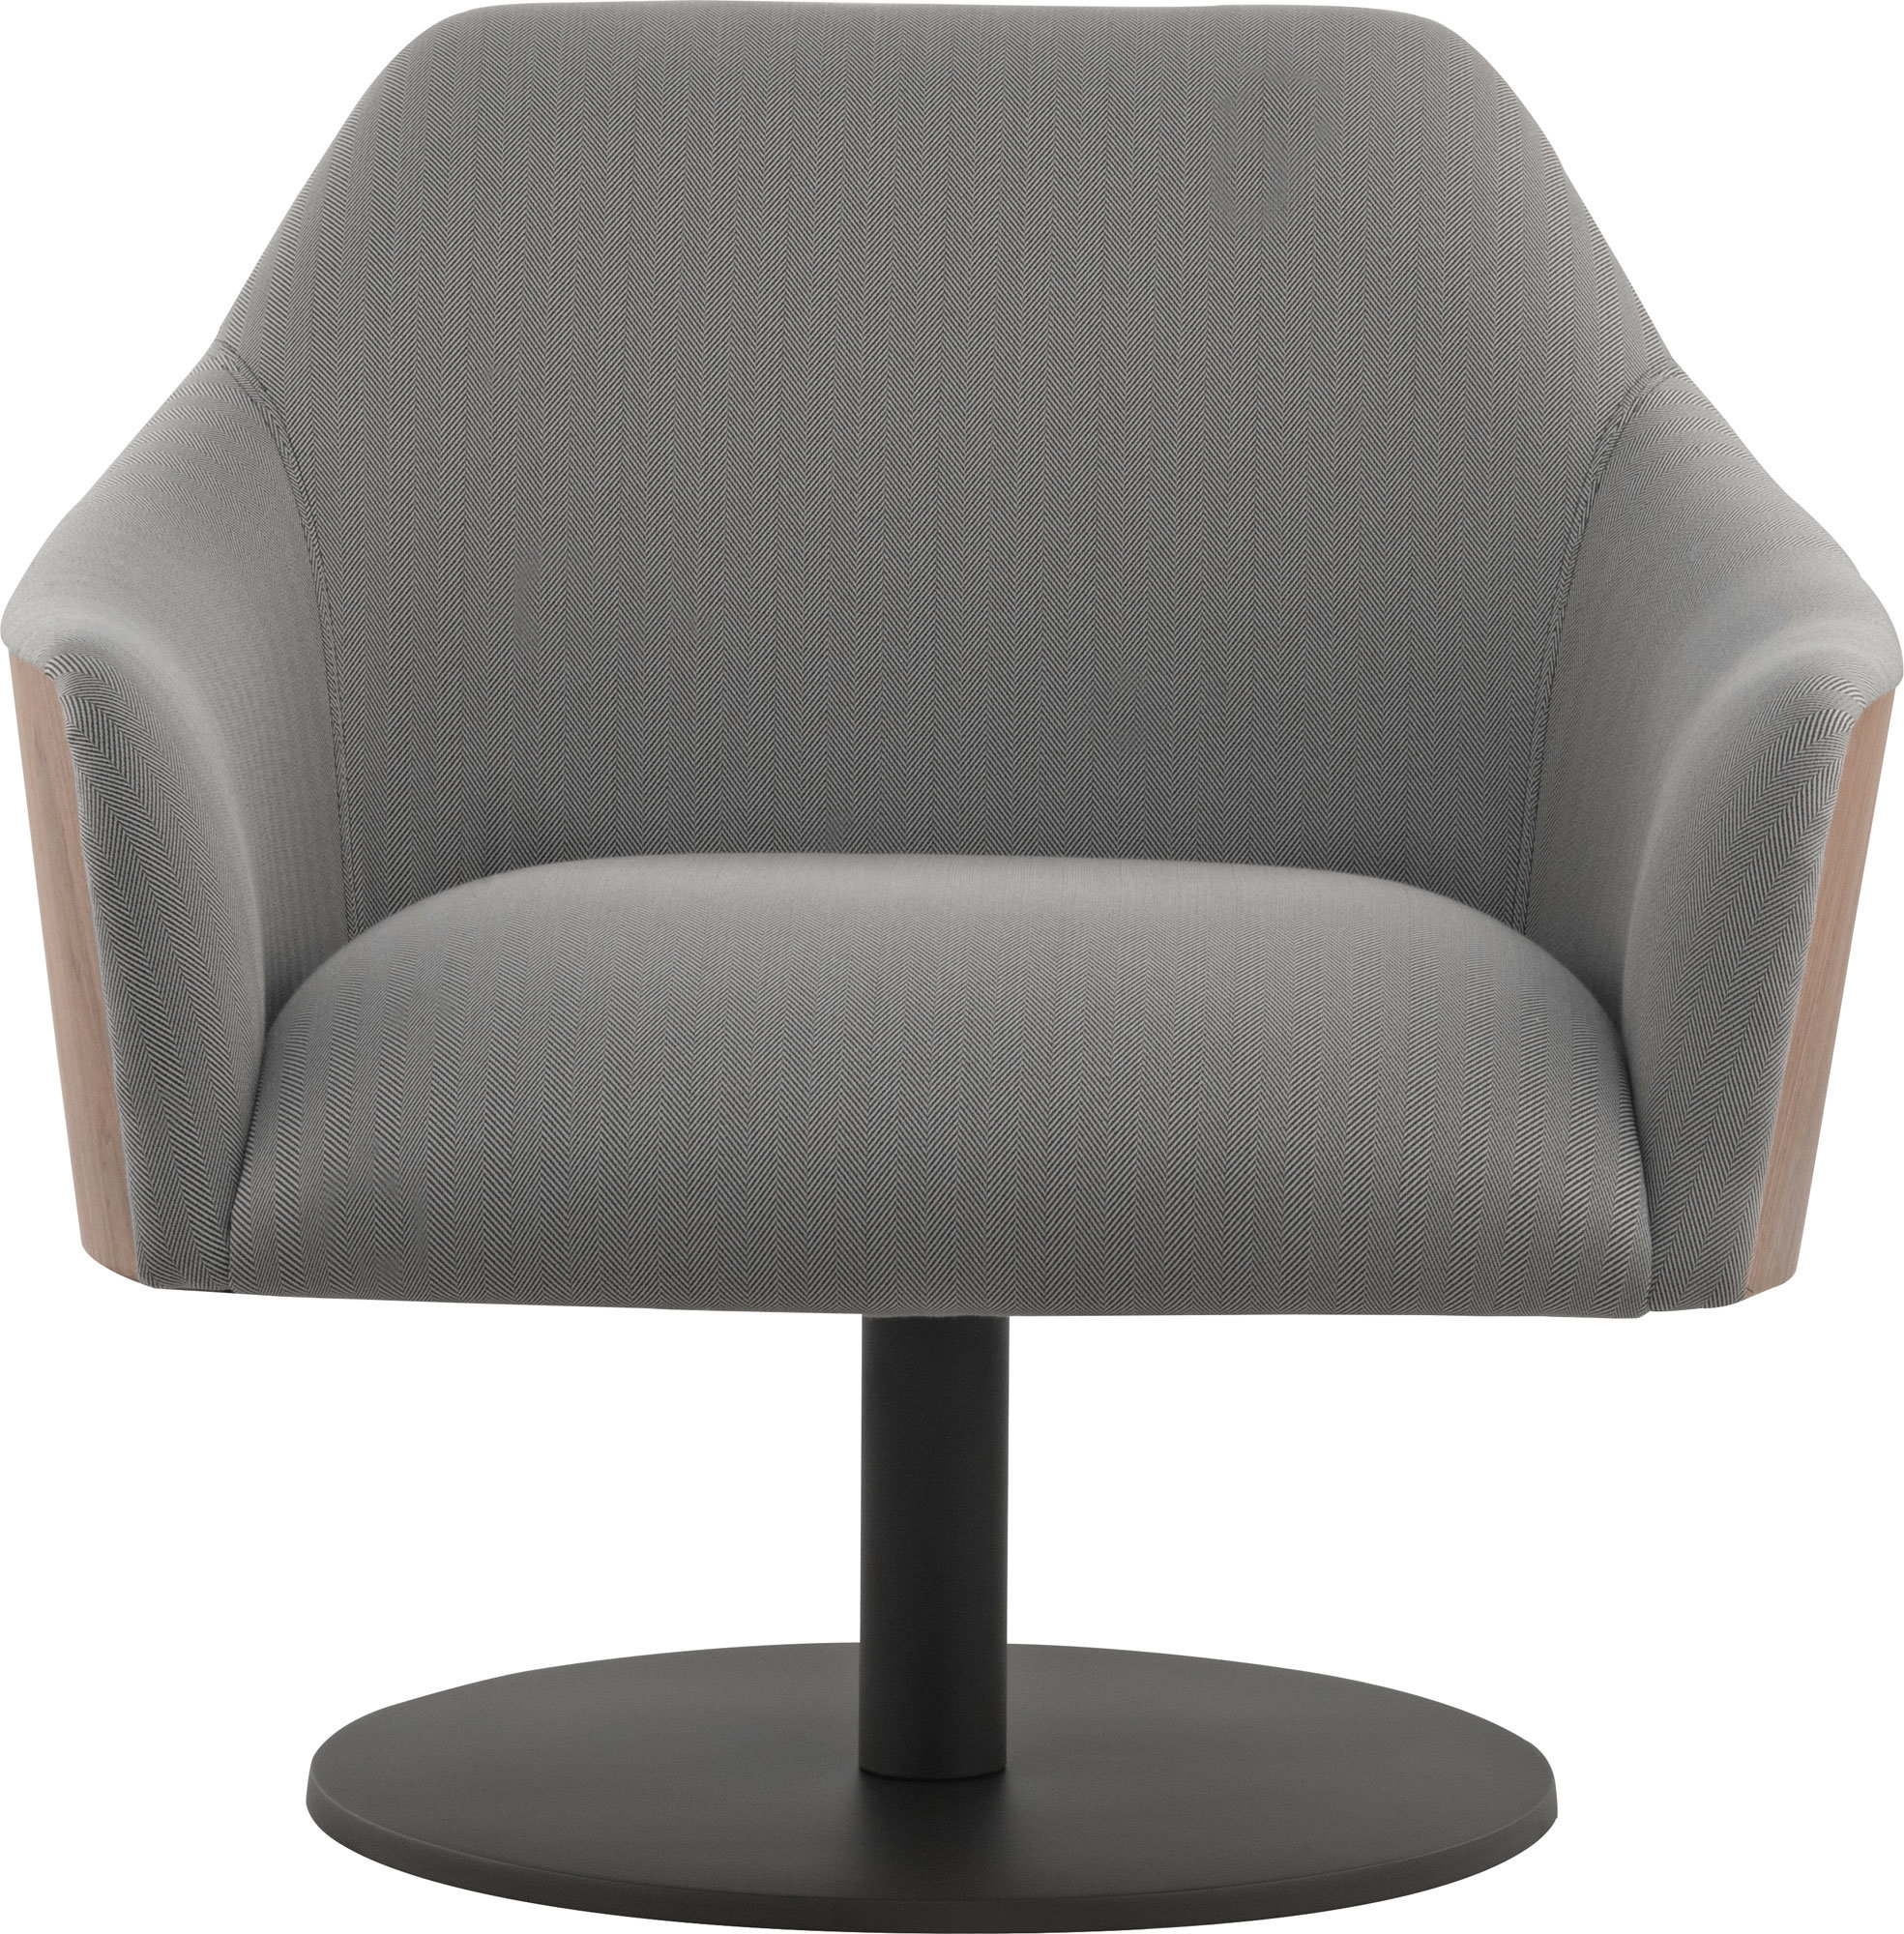 Henry Swivel Armchair | Allmodern Regarding Loft Black Swivel Accent Chairs (View 19 of 20)